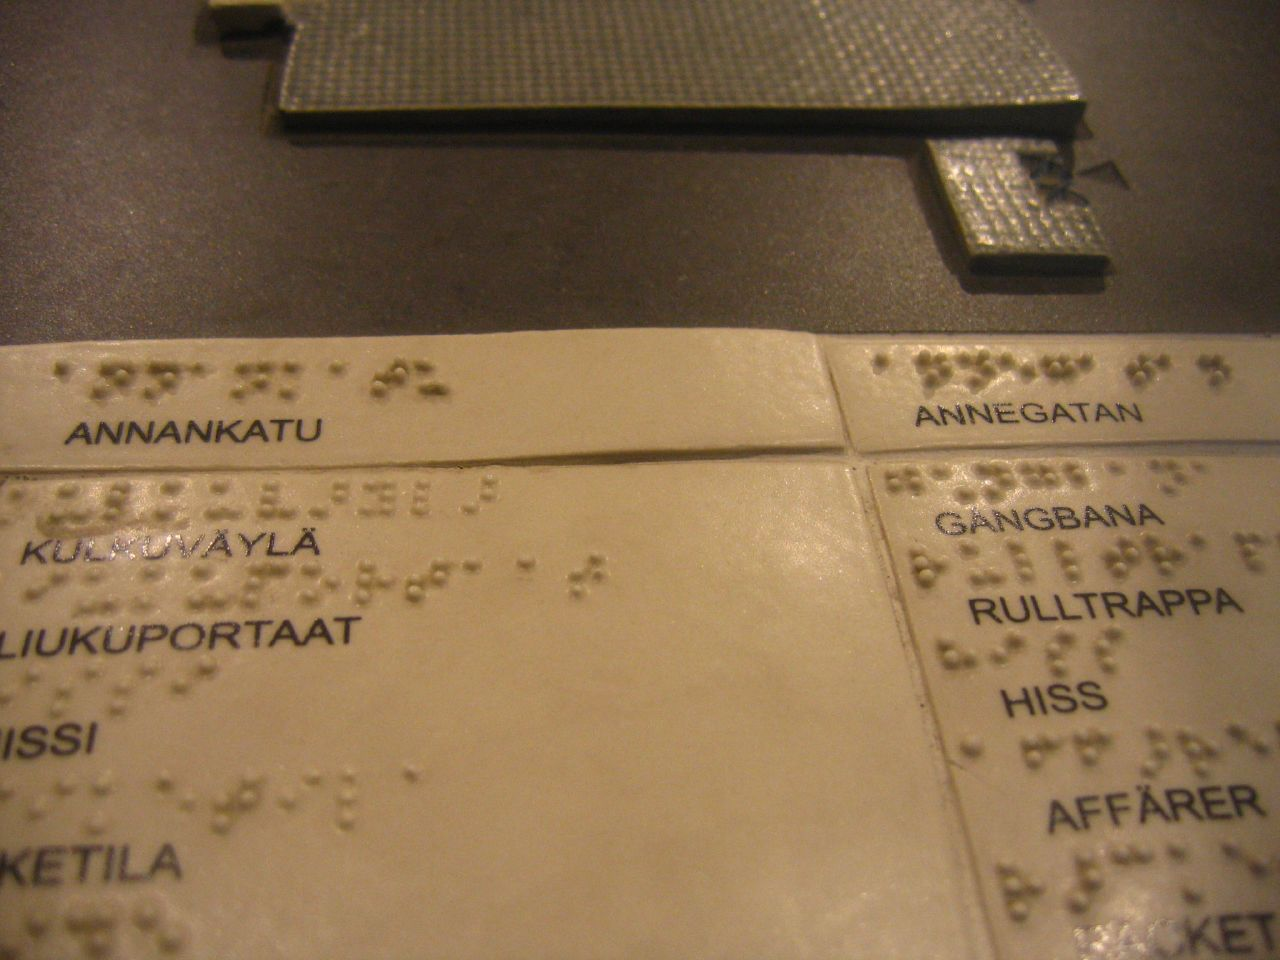 A page printed with Finnish words and embossed with braille.